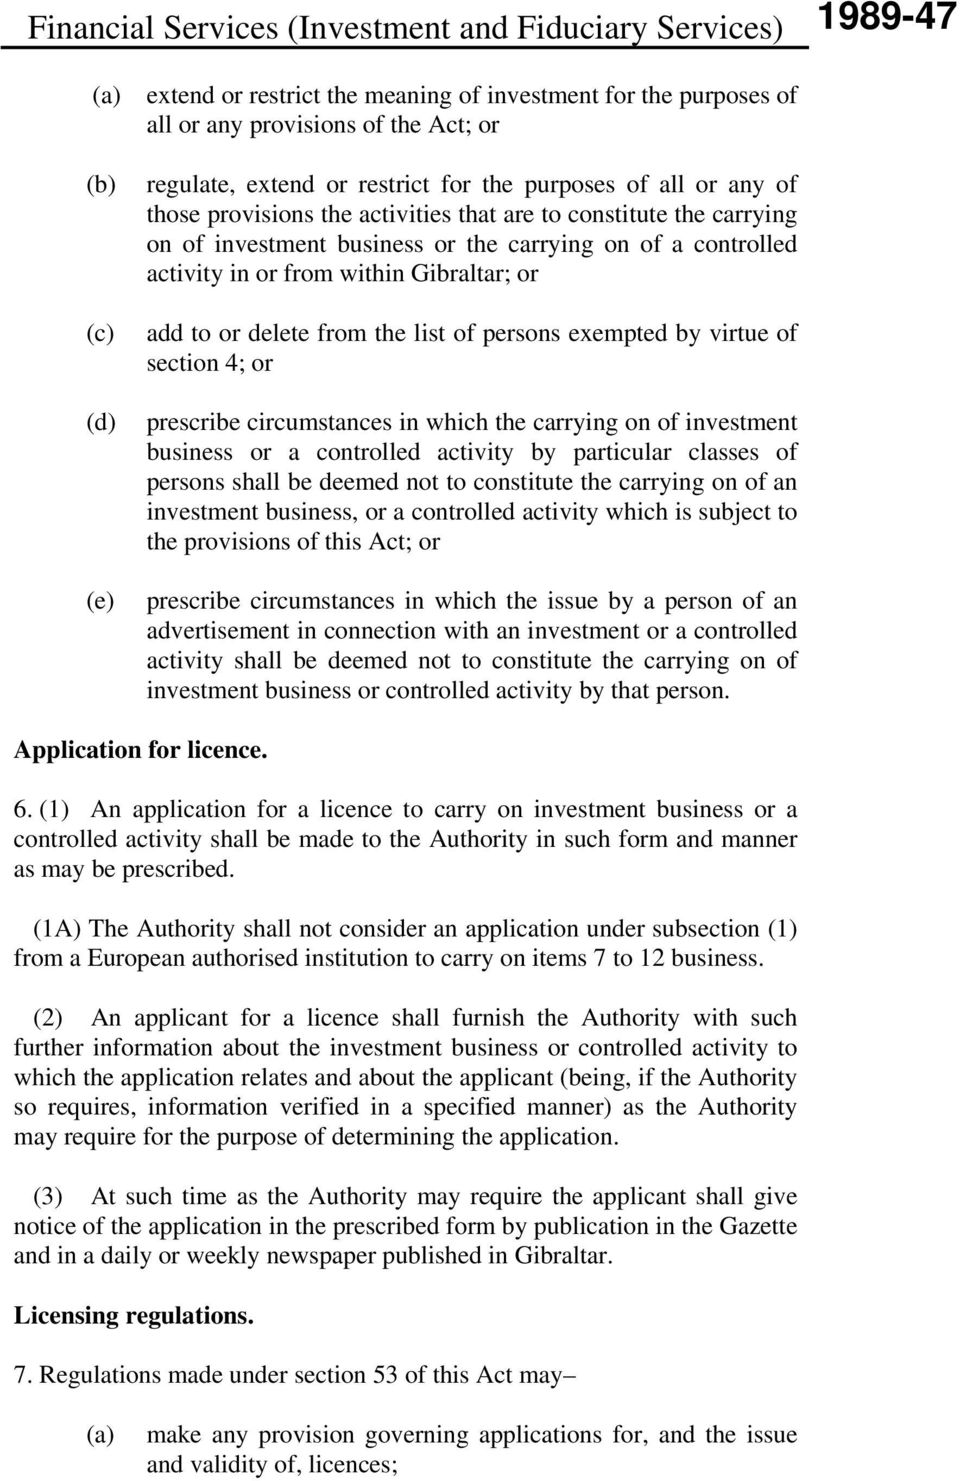 by virtue of section 4; or prescribe circumstances in which the carrying on of investment business or a controlled activity by particular classes of persons shall be deemed not to constitute the